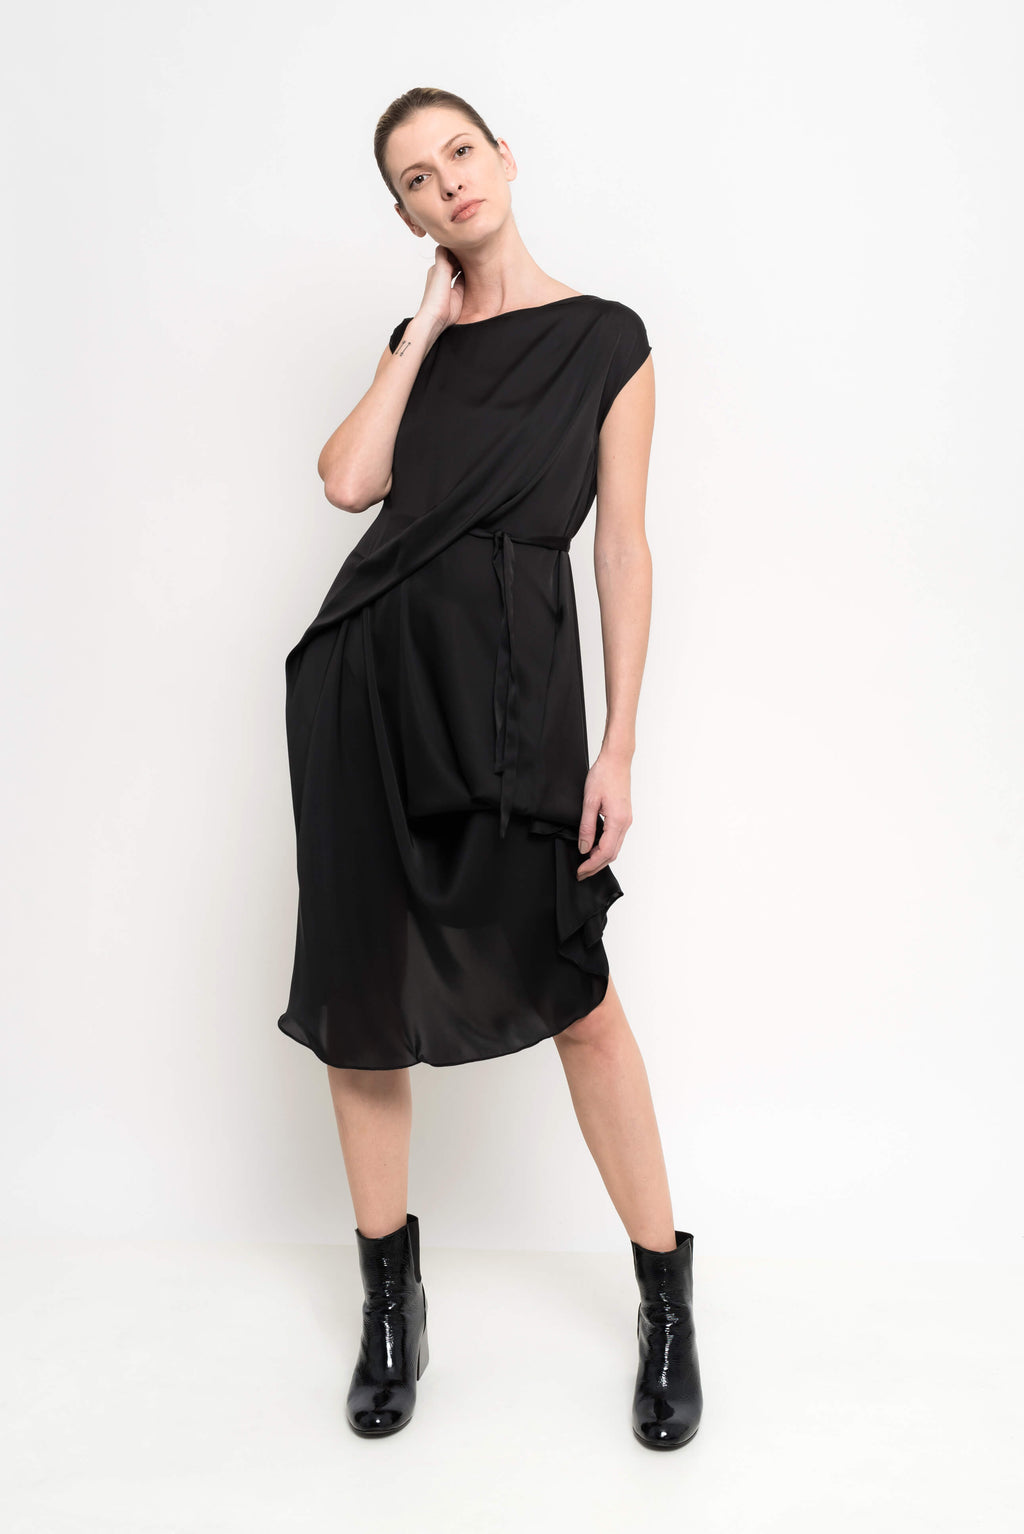 Chic Satin Draped Dress | Romulu